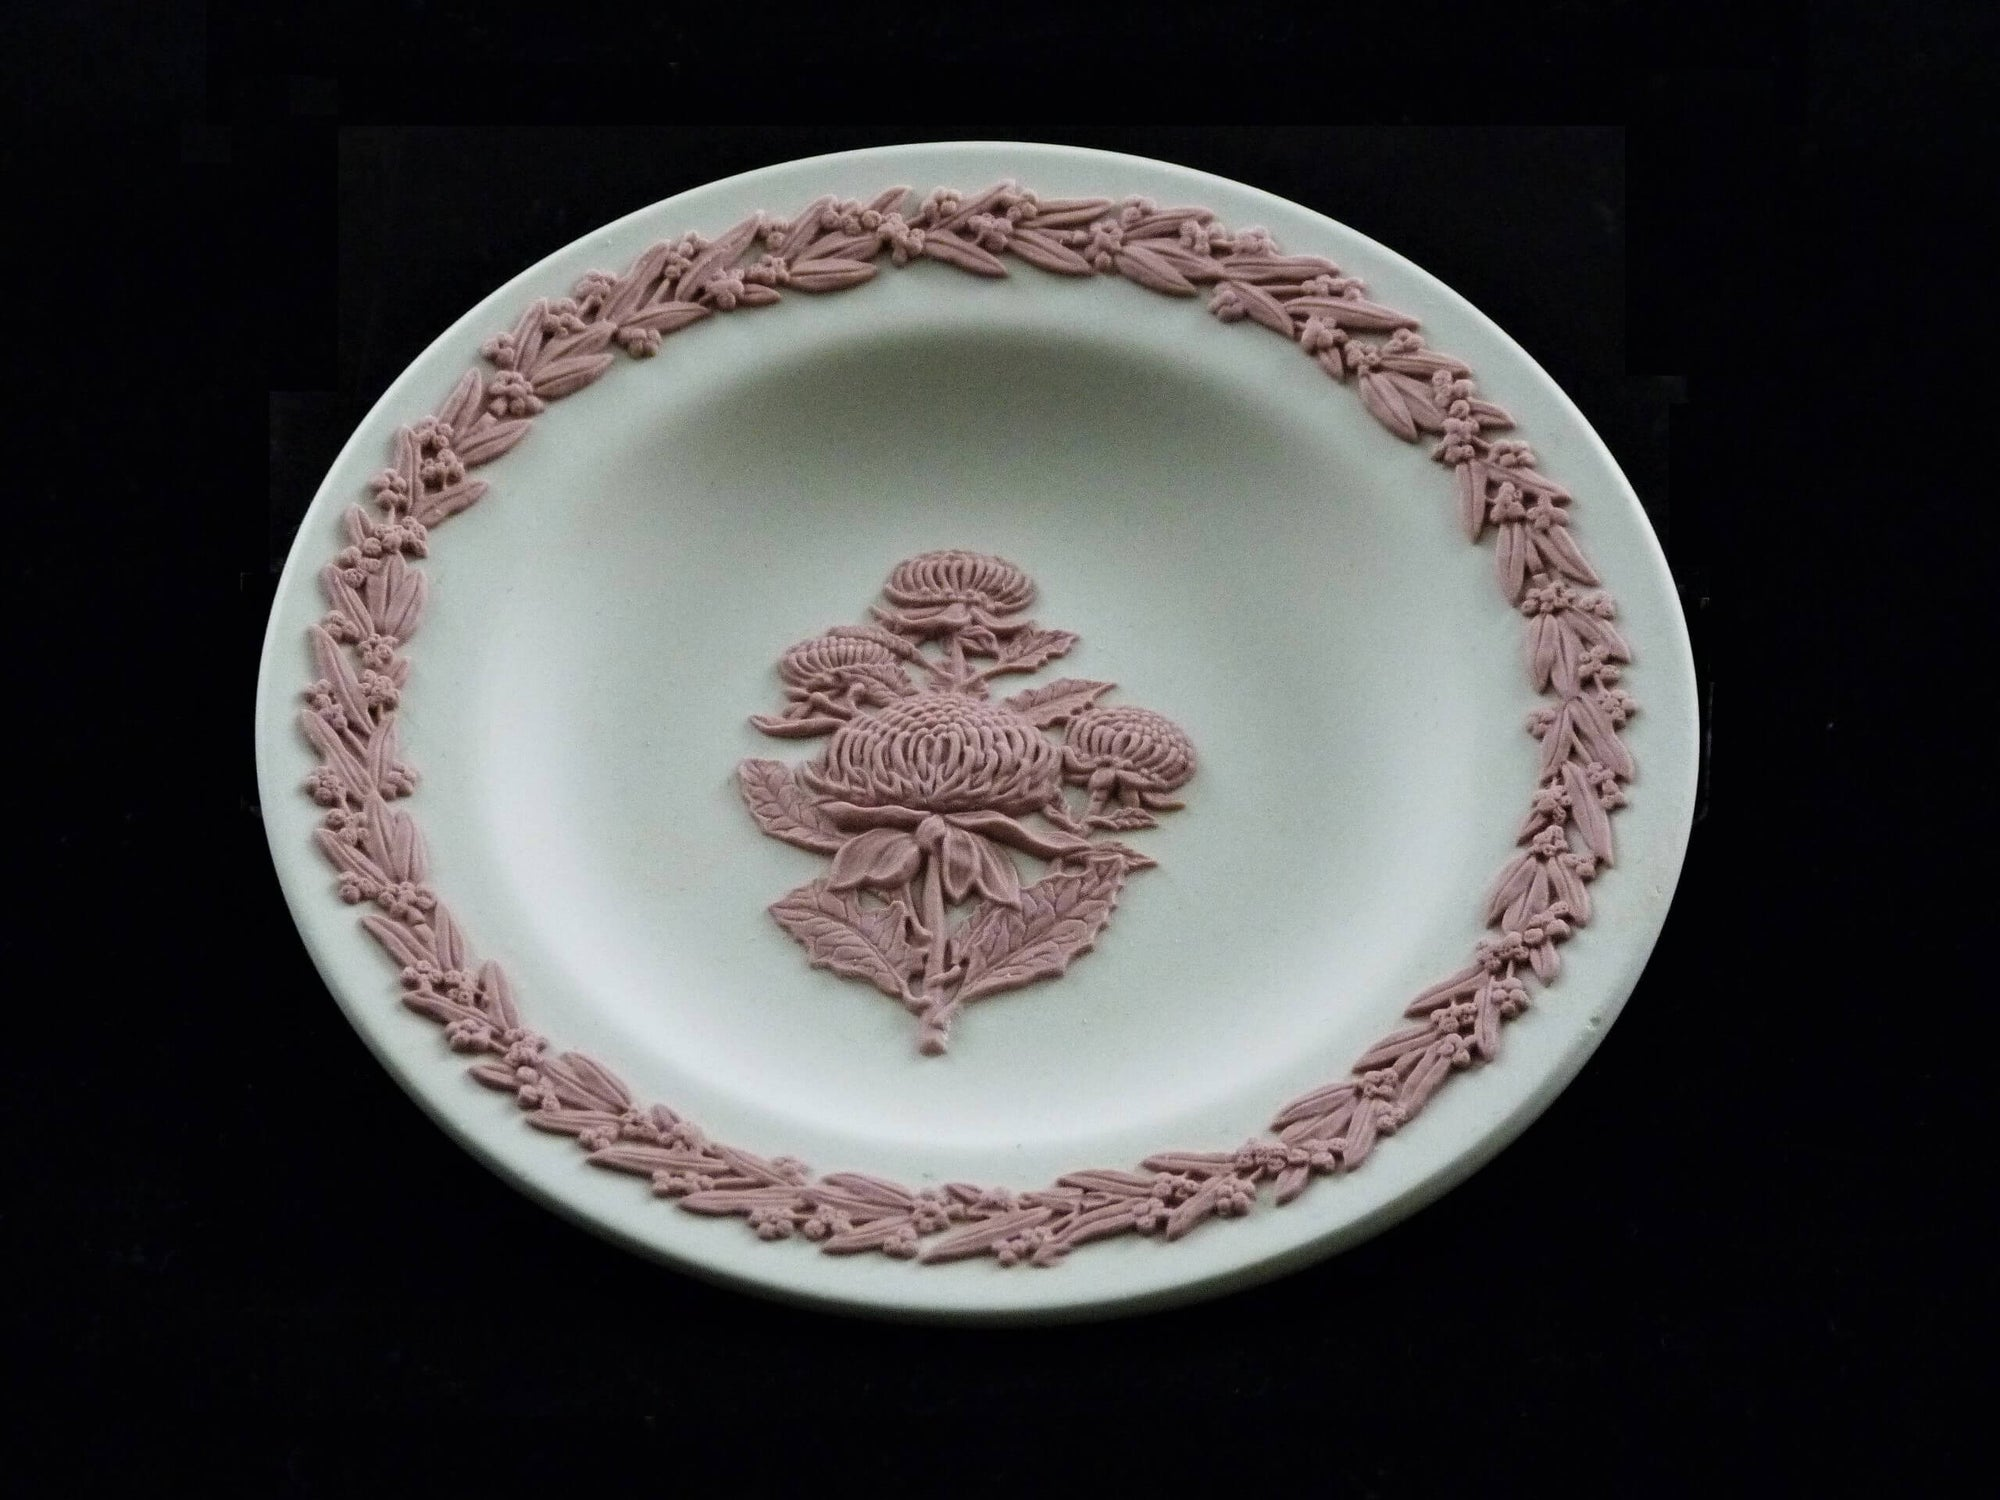 Wedgwood Waratah Miniature Plate, Ltd Ed 10,000, Collectors Society